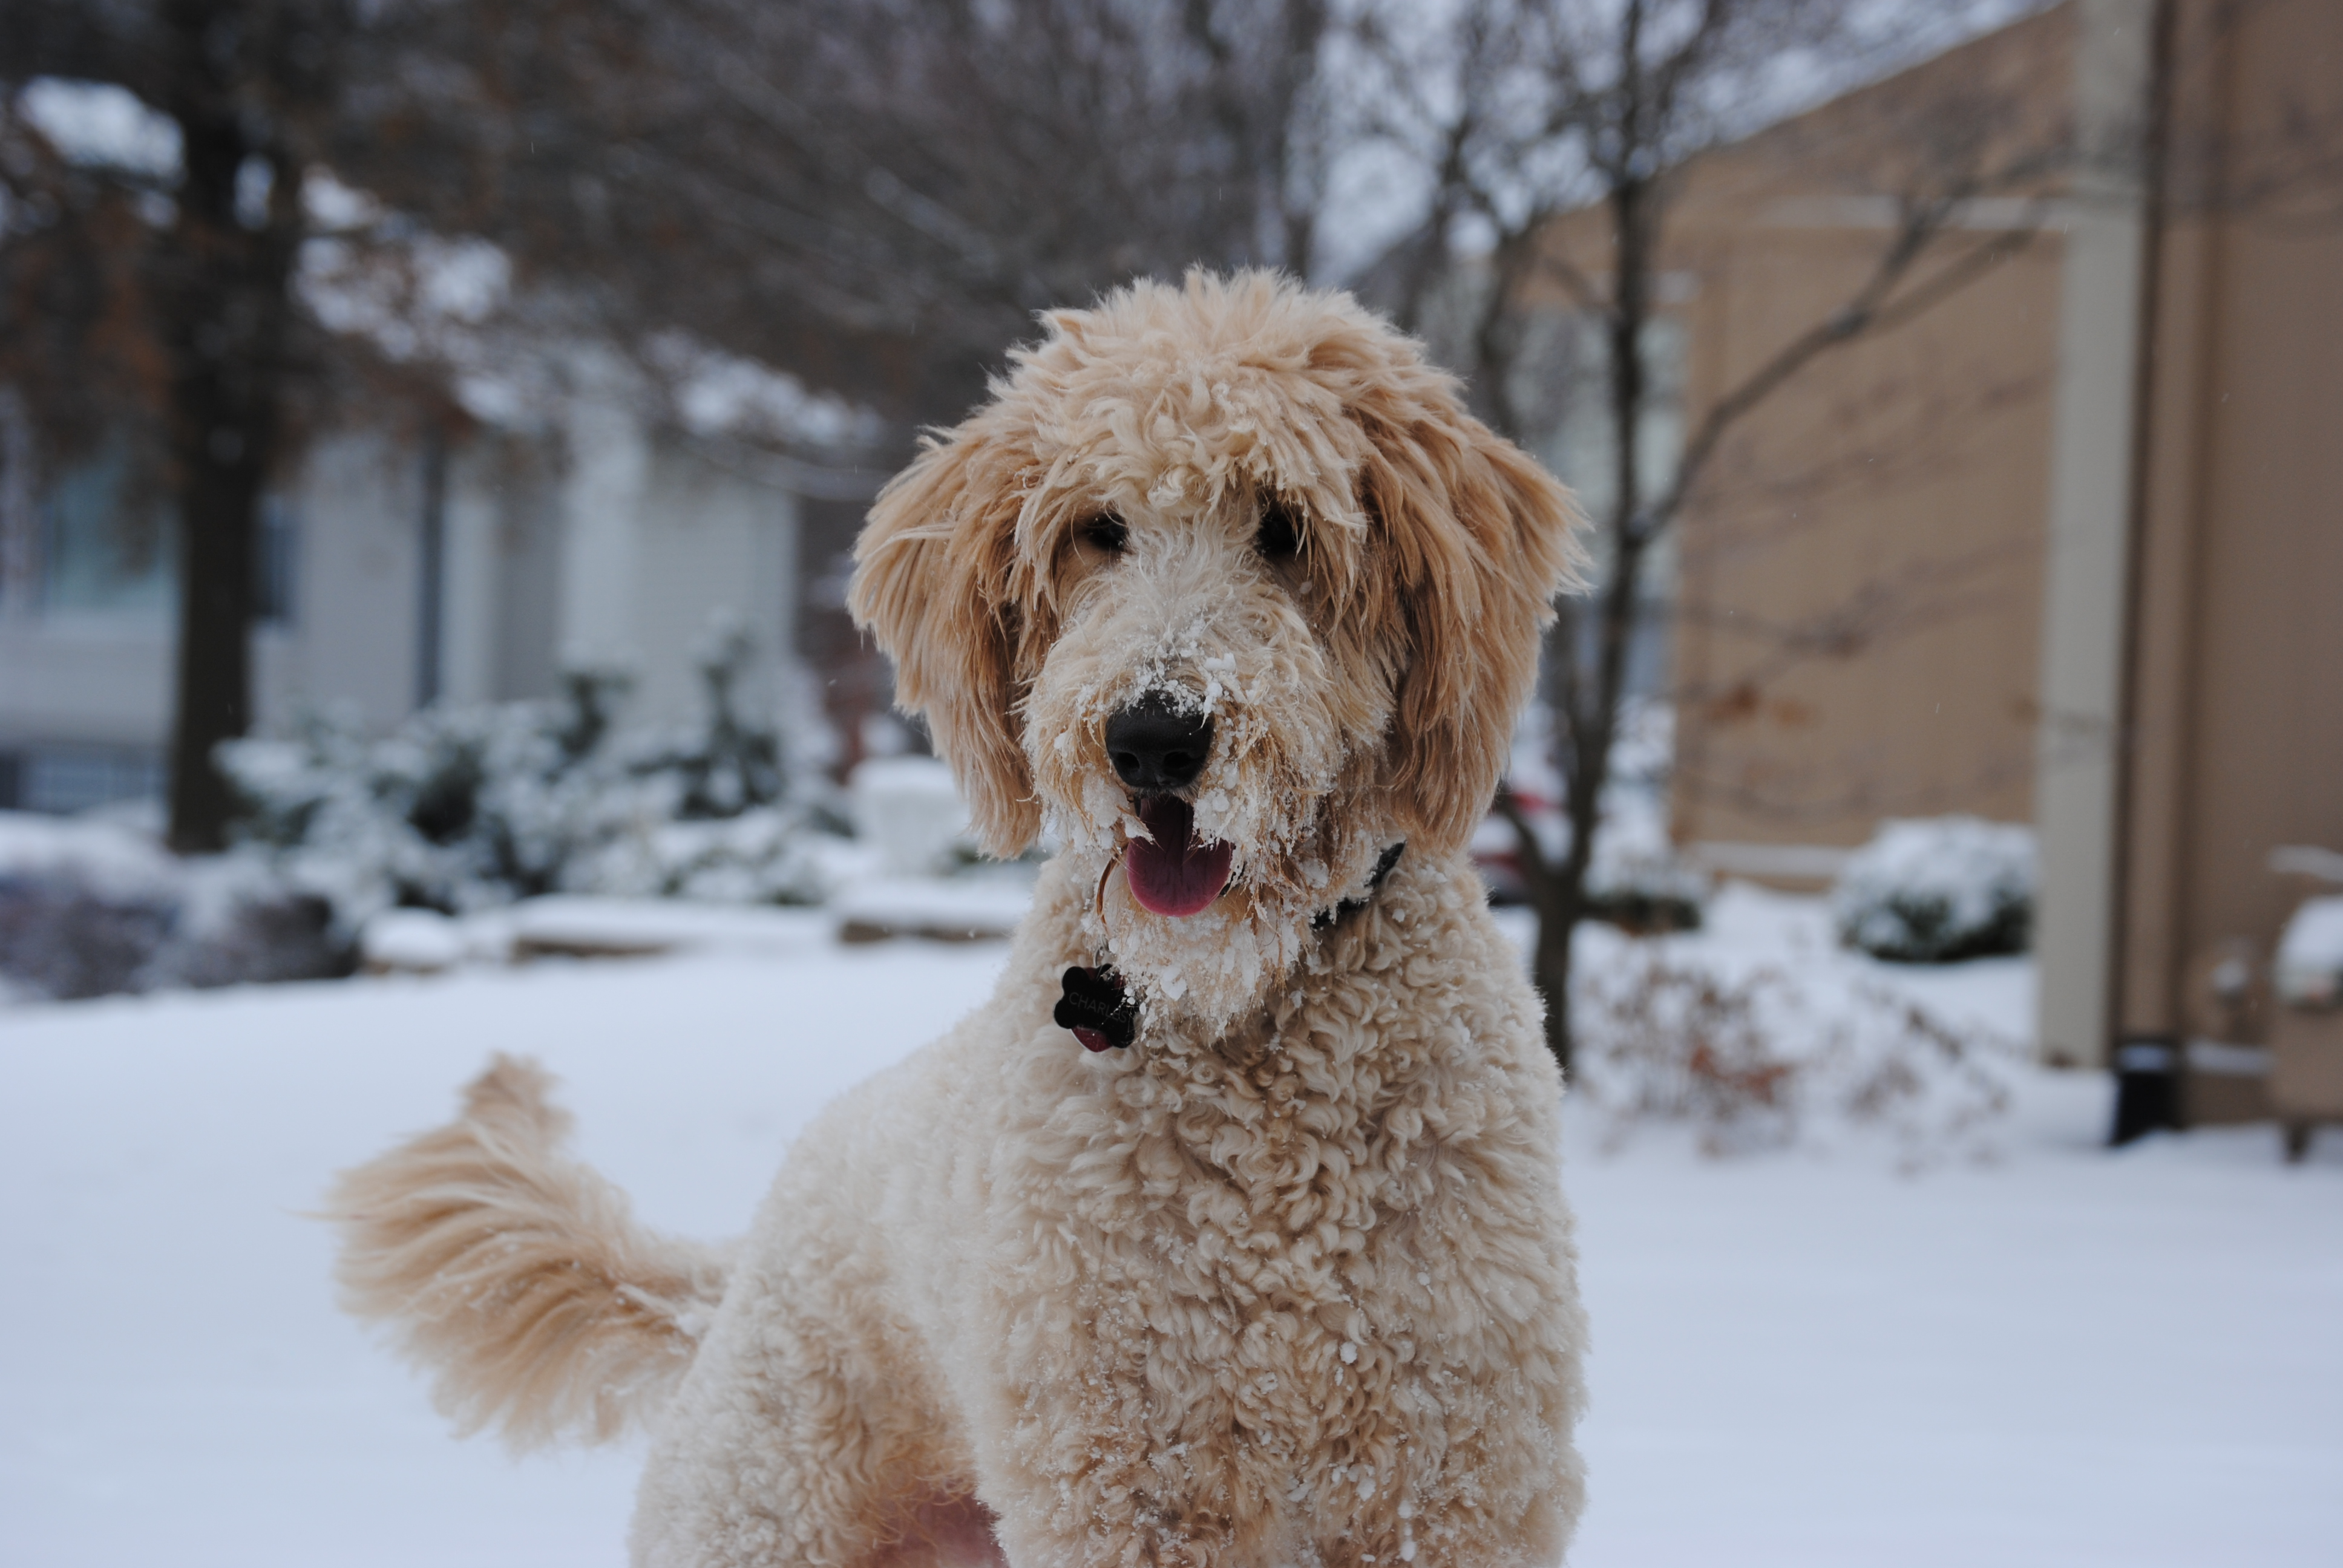 File:Snowy goldendoodle.JPG - Wikimedia Commons